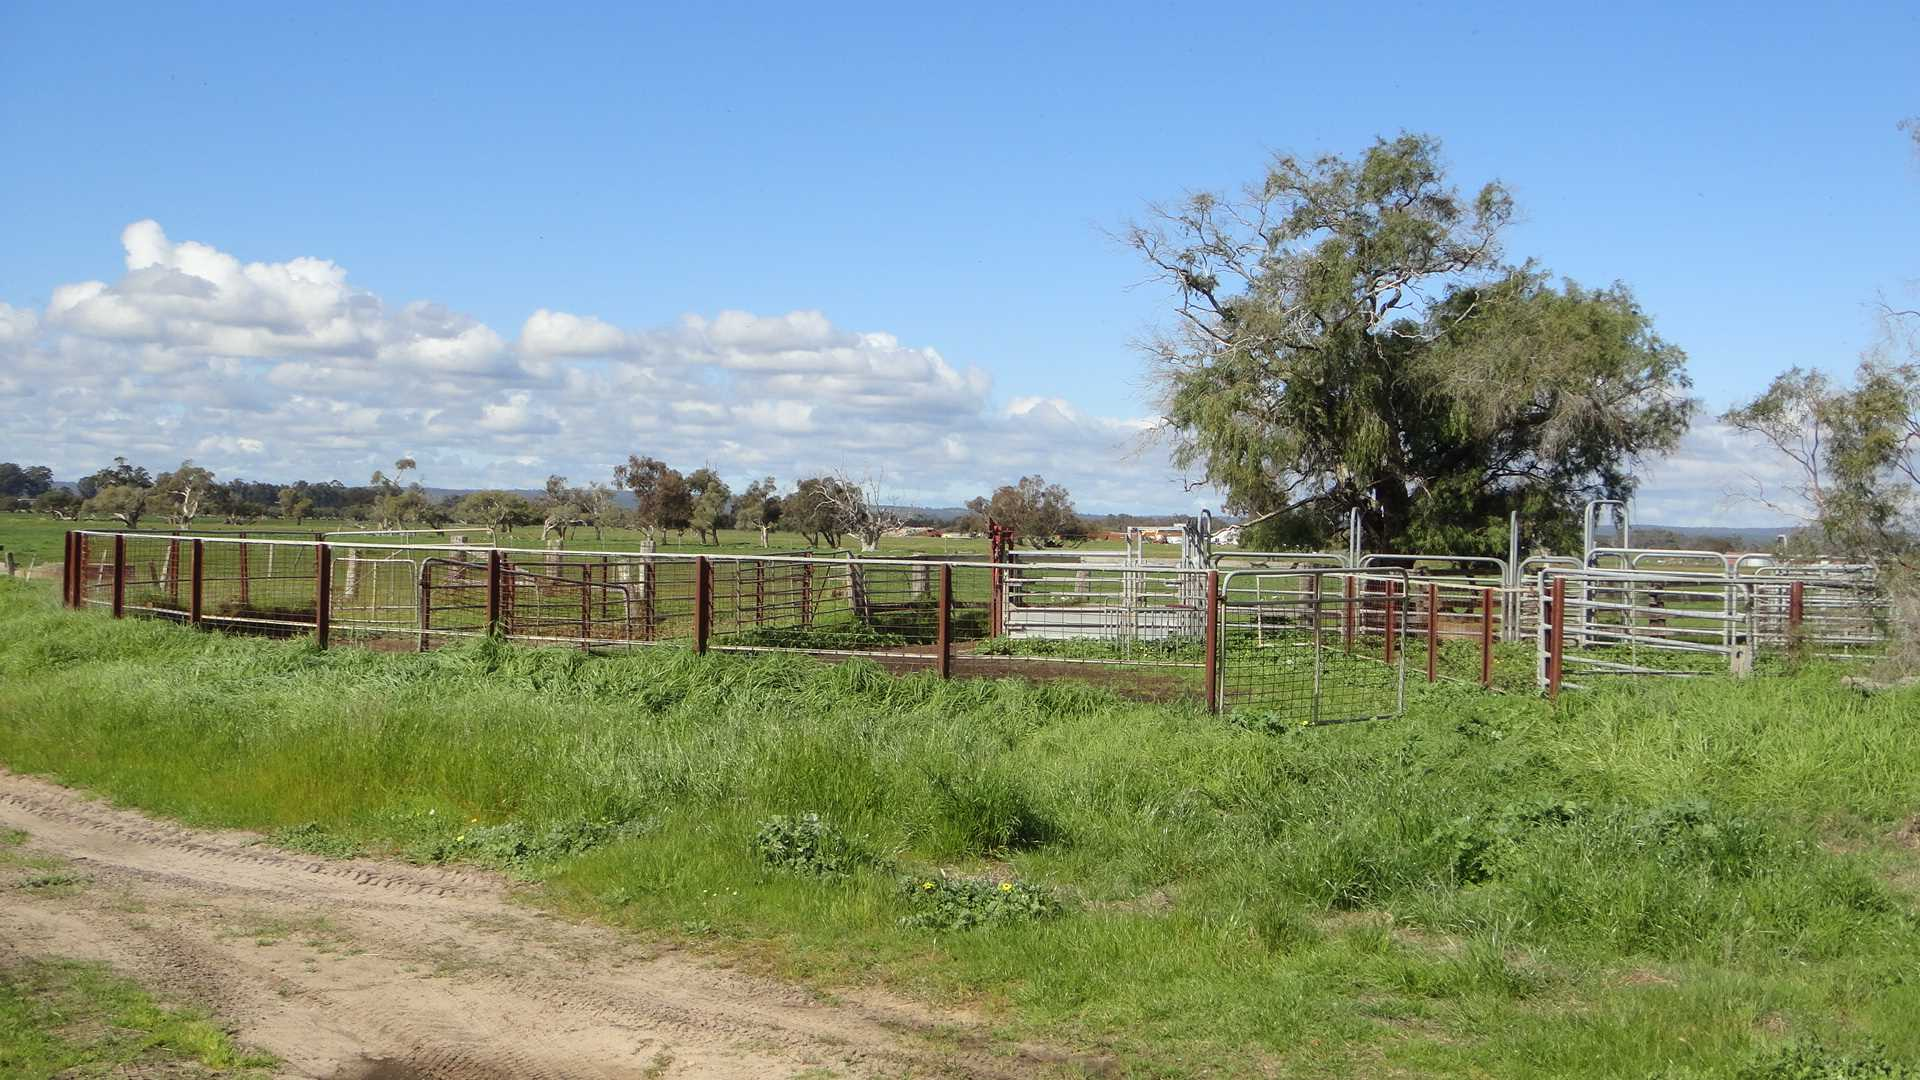 Open grazing and fodder production block